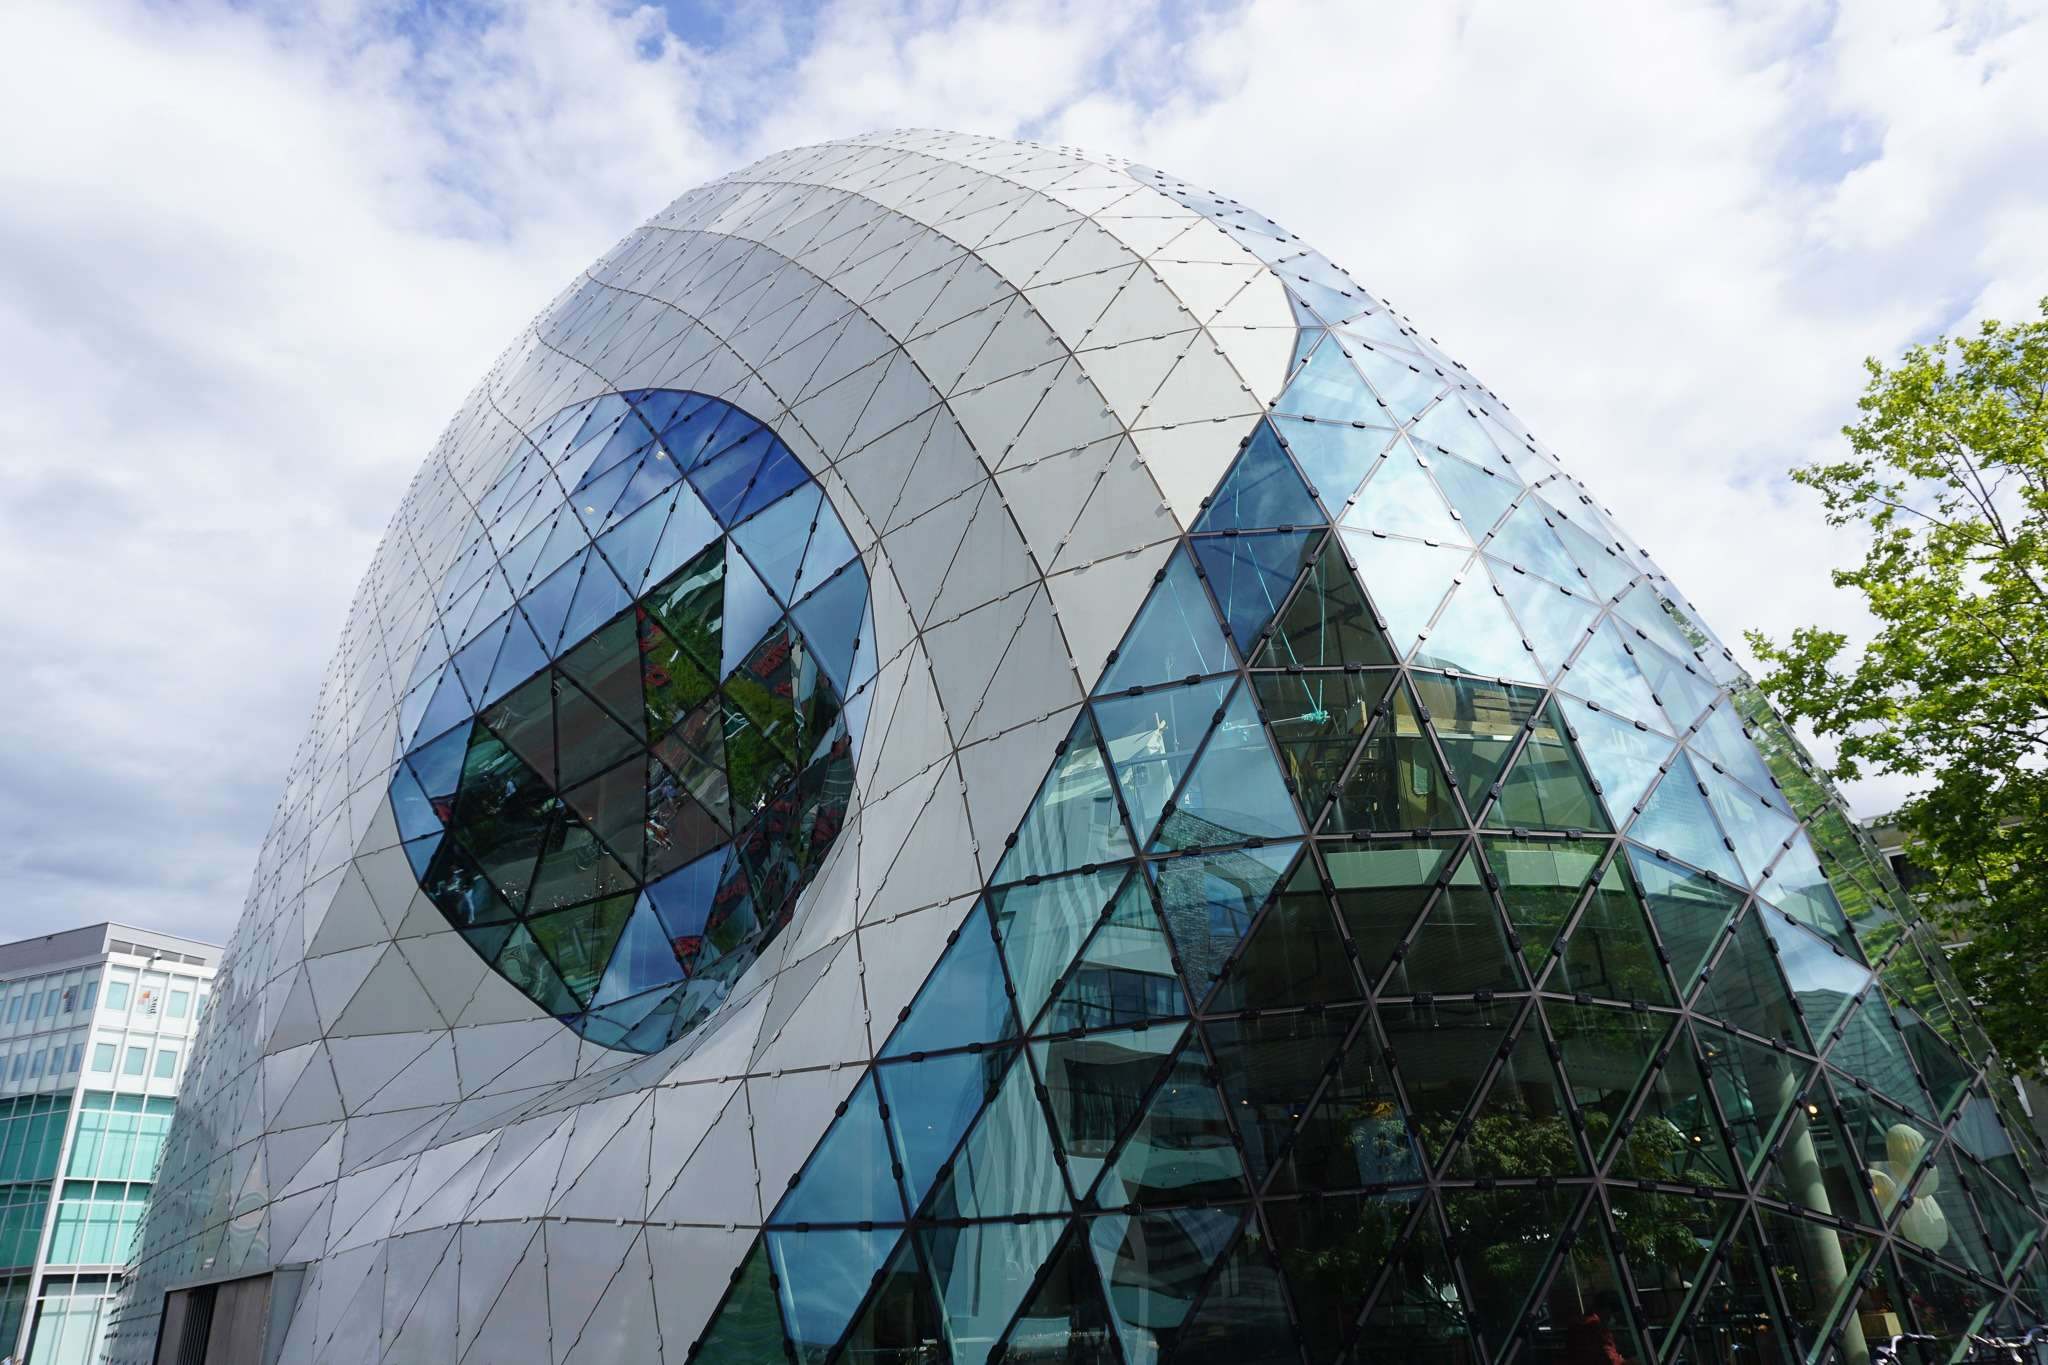 the Blob glass building in Eindhoven